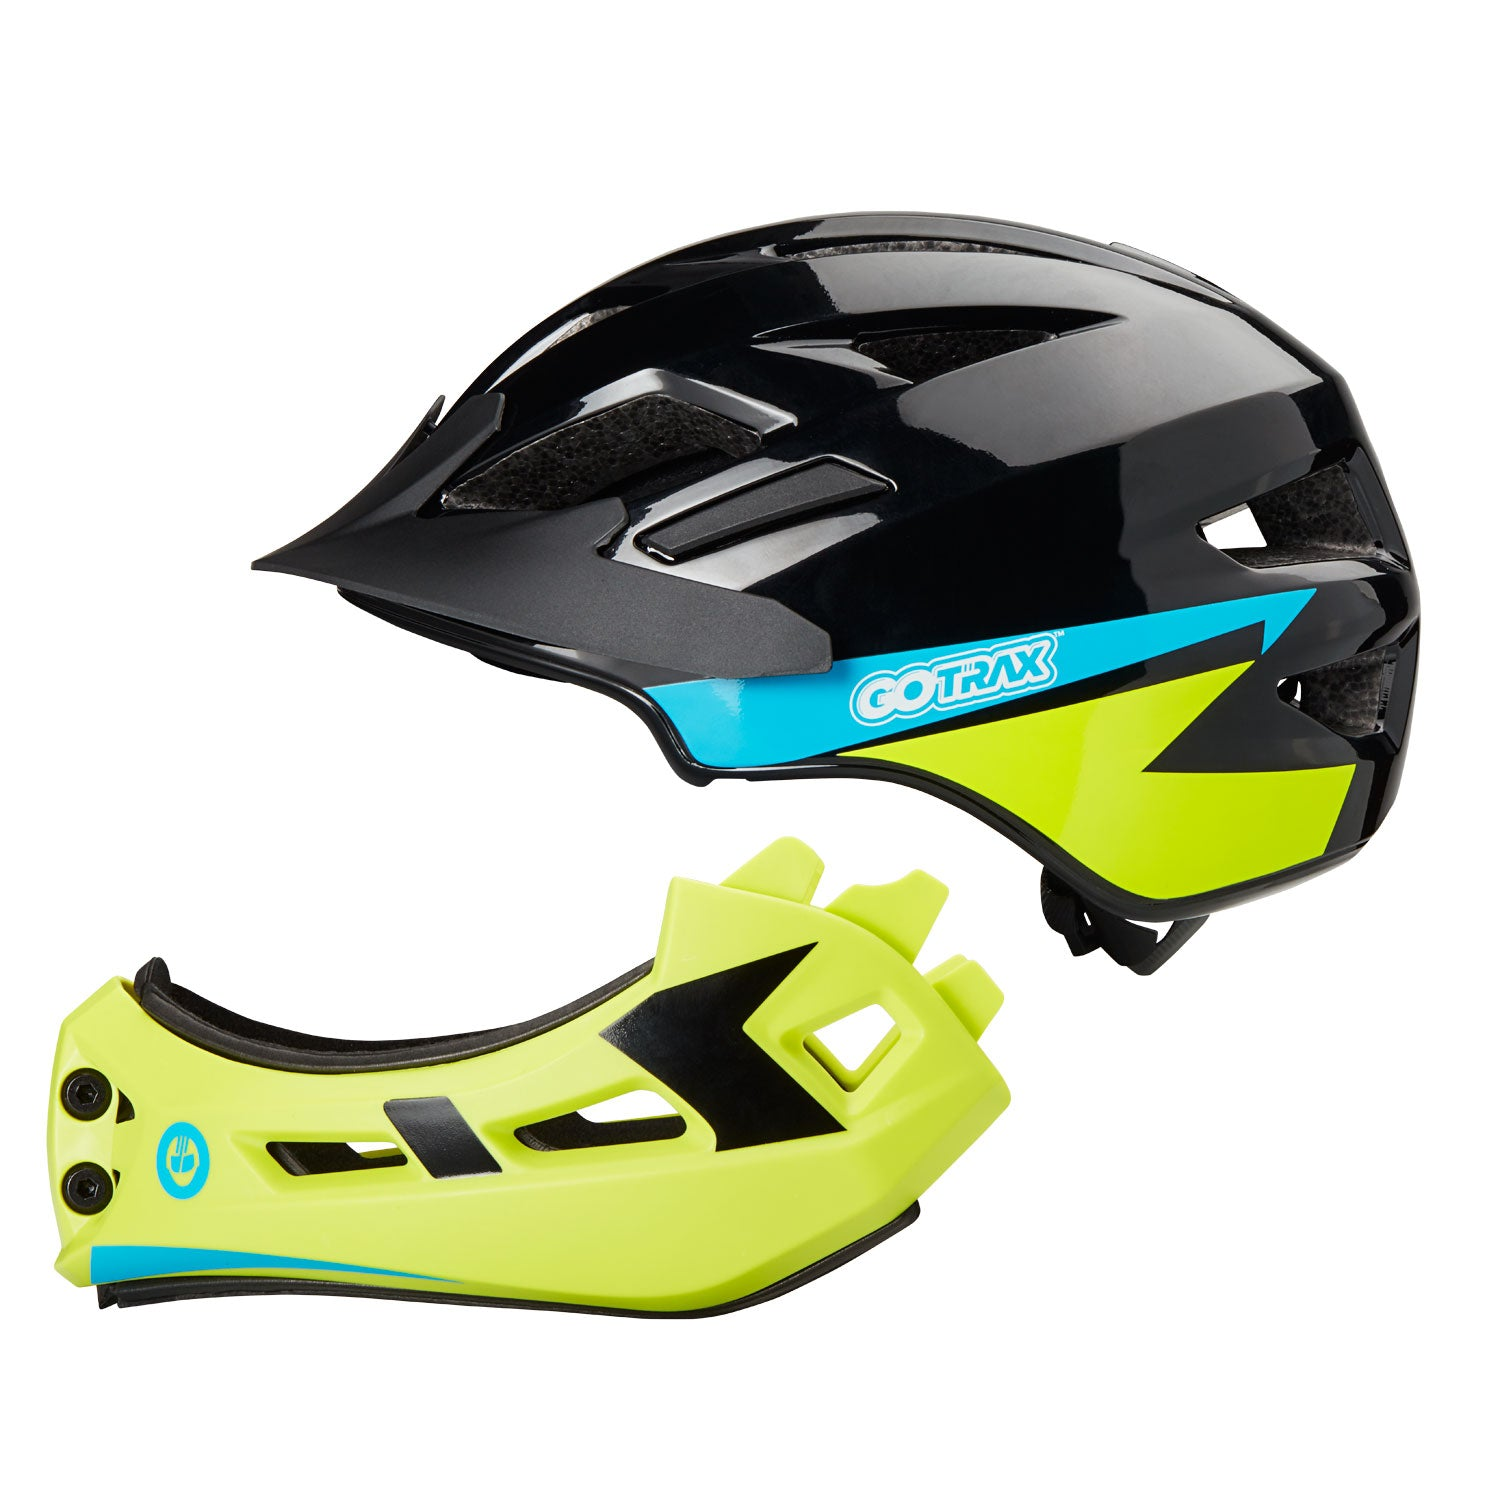 Green GOTRAX 2 in 1 Helmet Separated Image